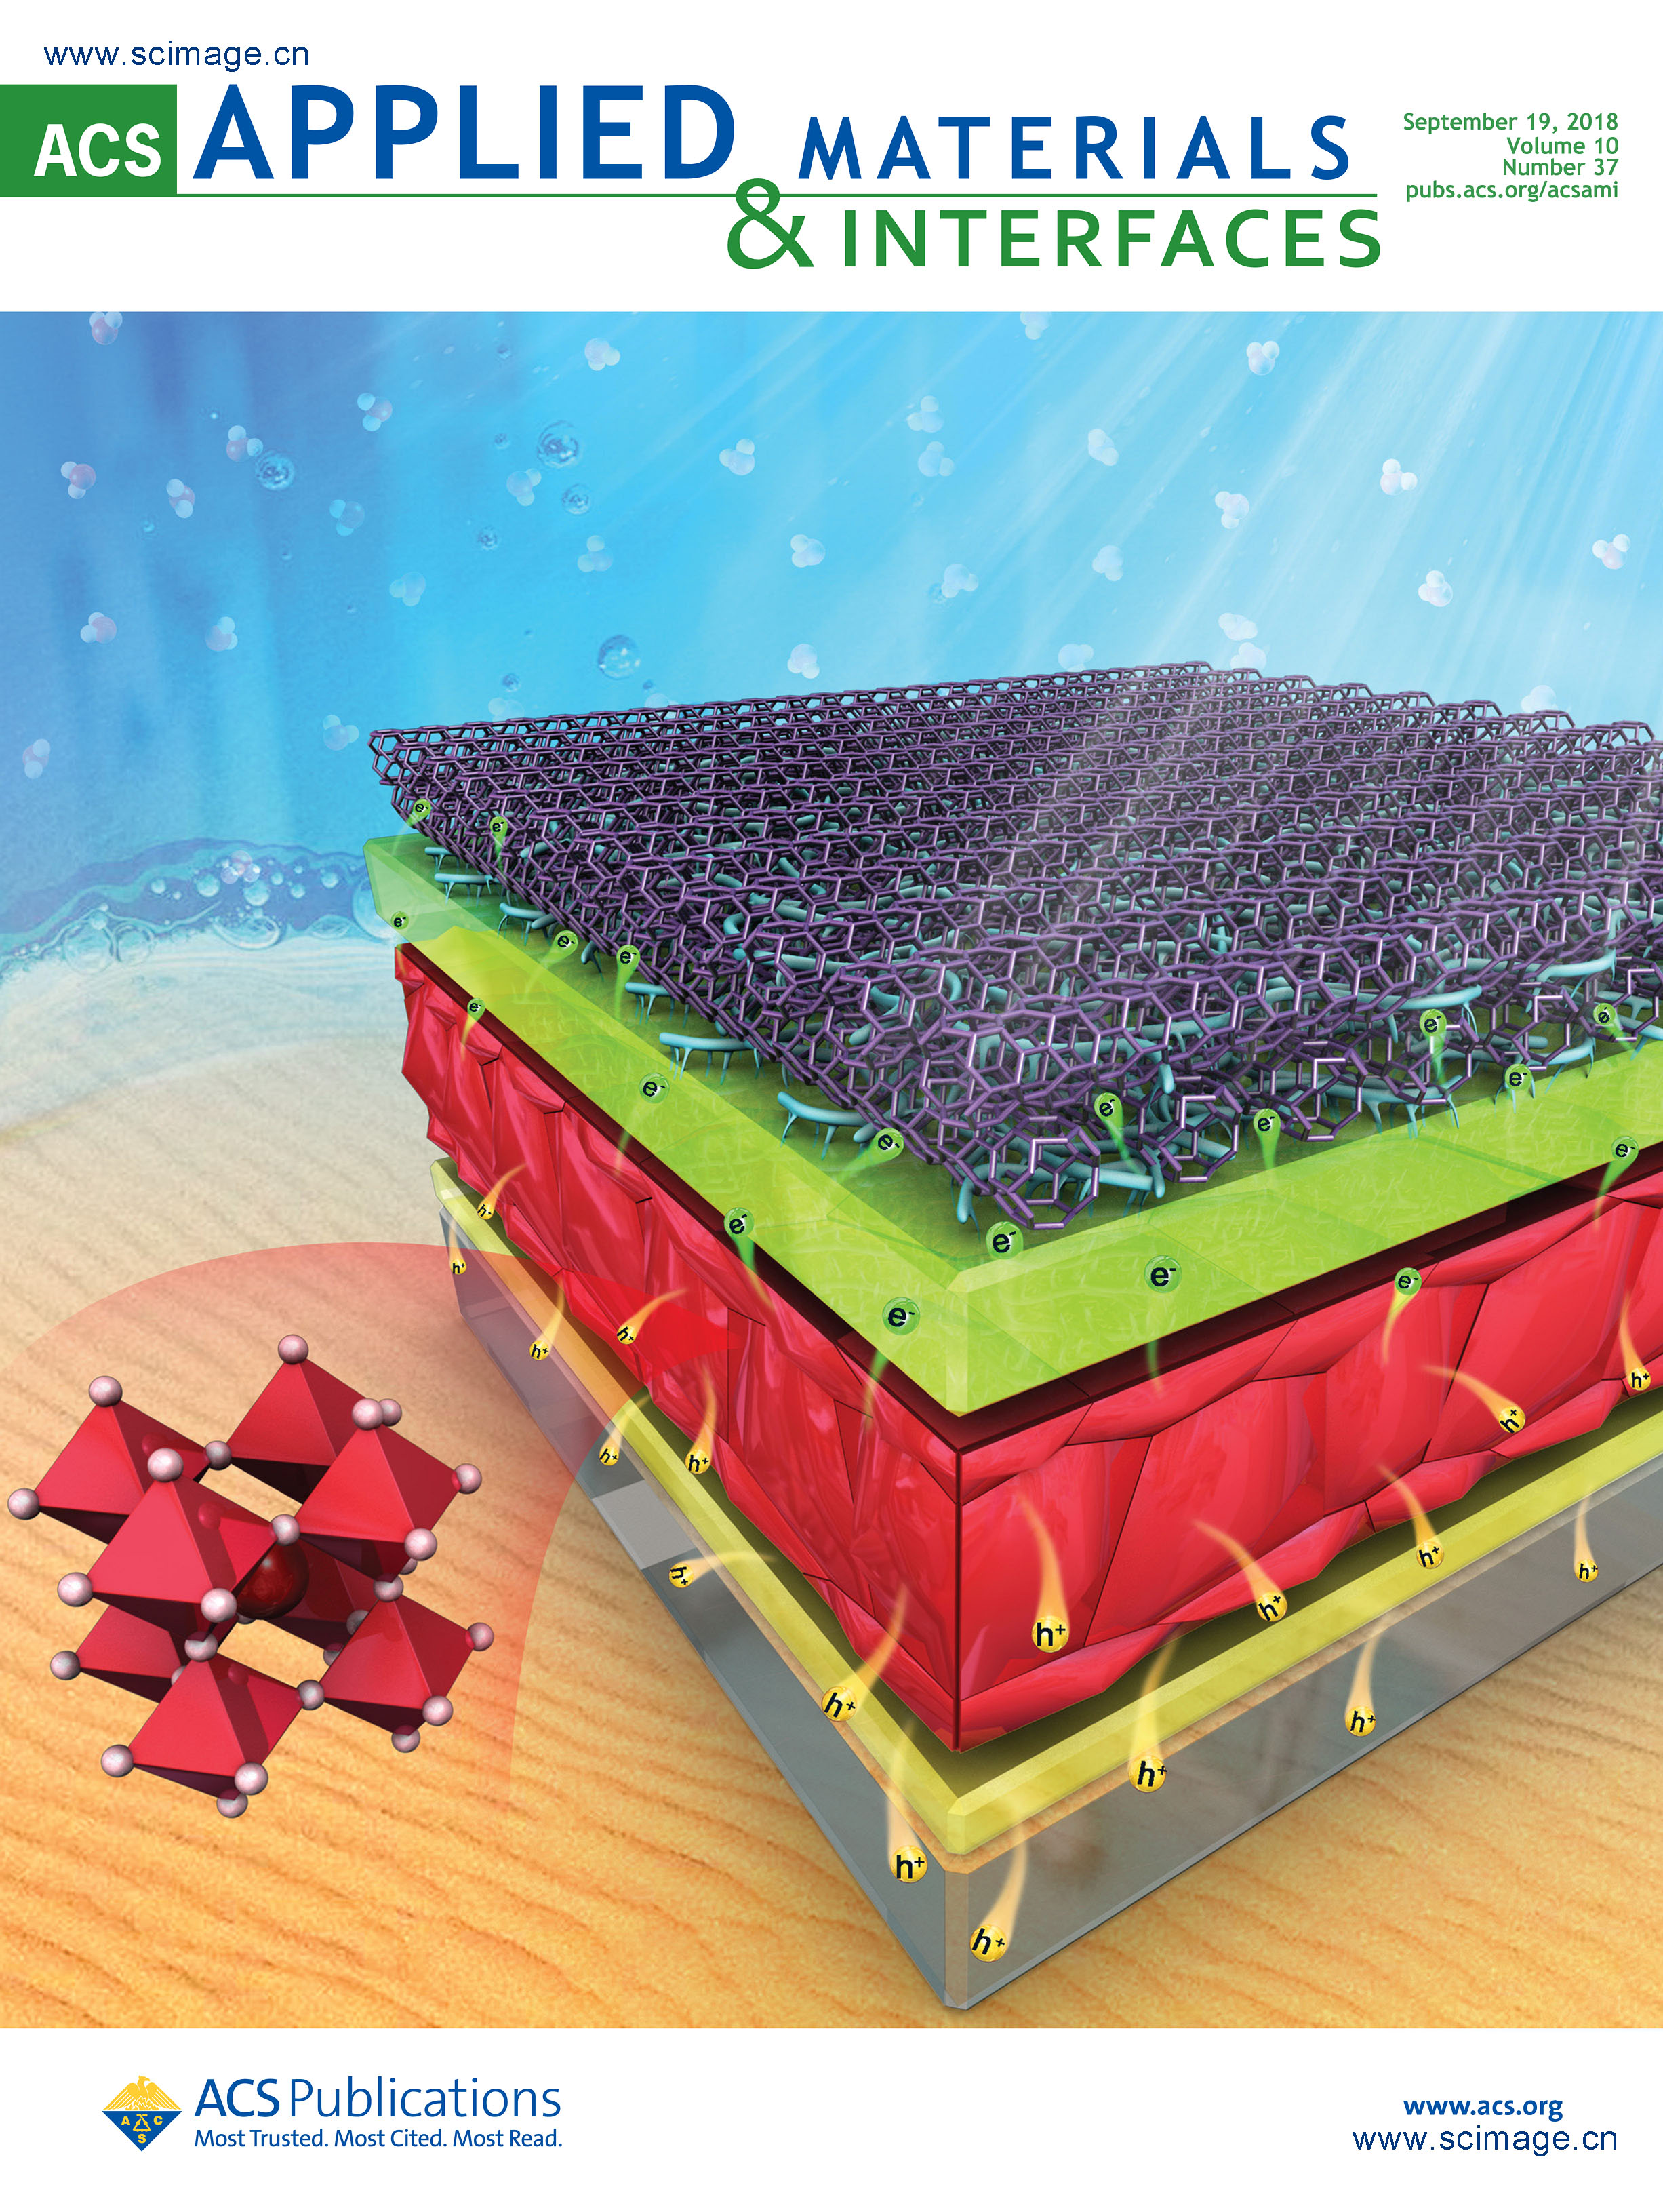 Efficiently Improving the Stability of Inverted Perovskite Solar Cells by Employing Polyethylenimine-Modified Carbon Nanotubes as Electrodes